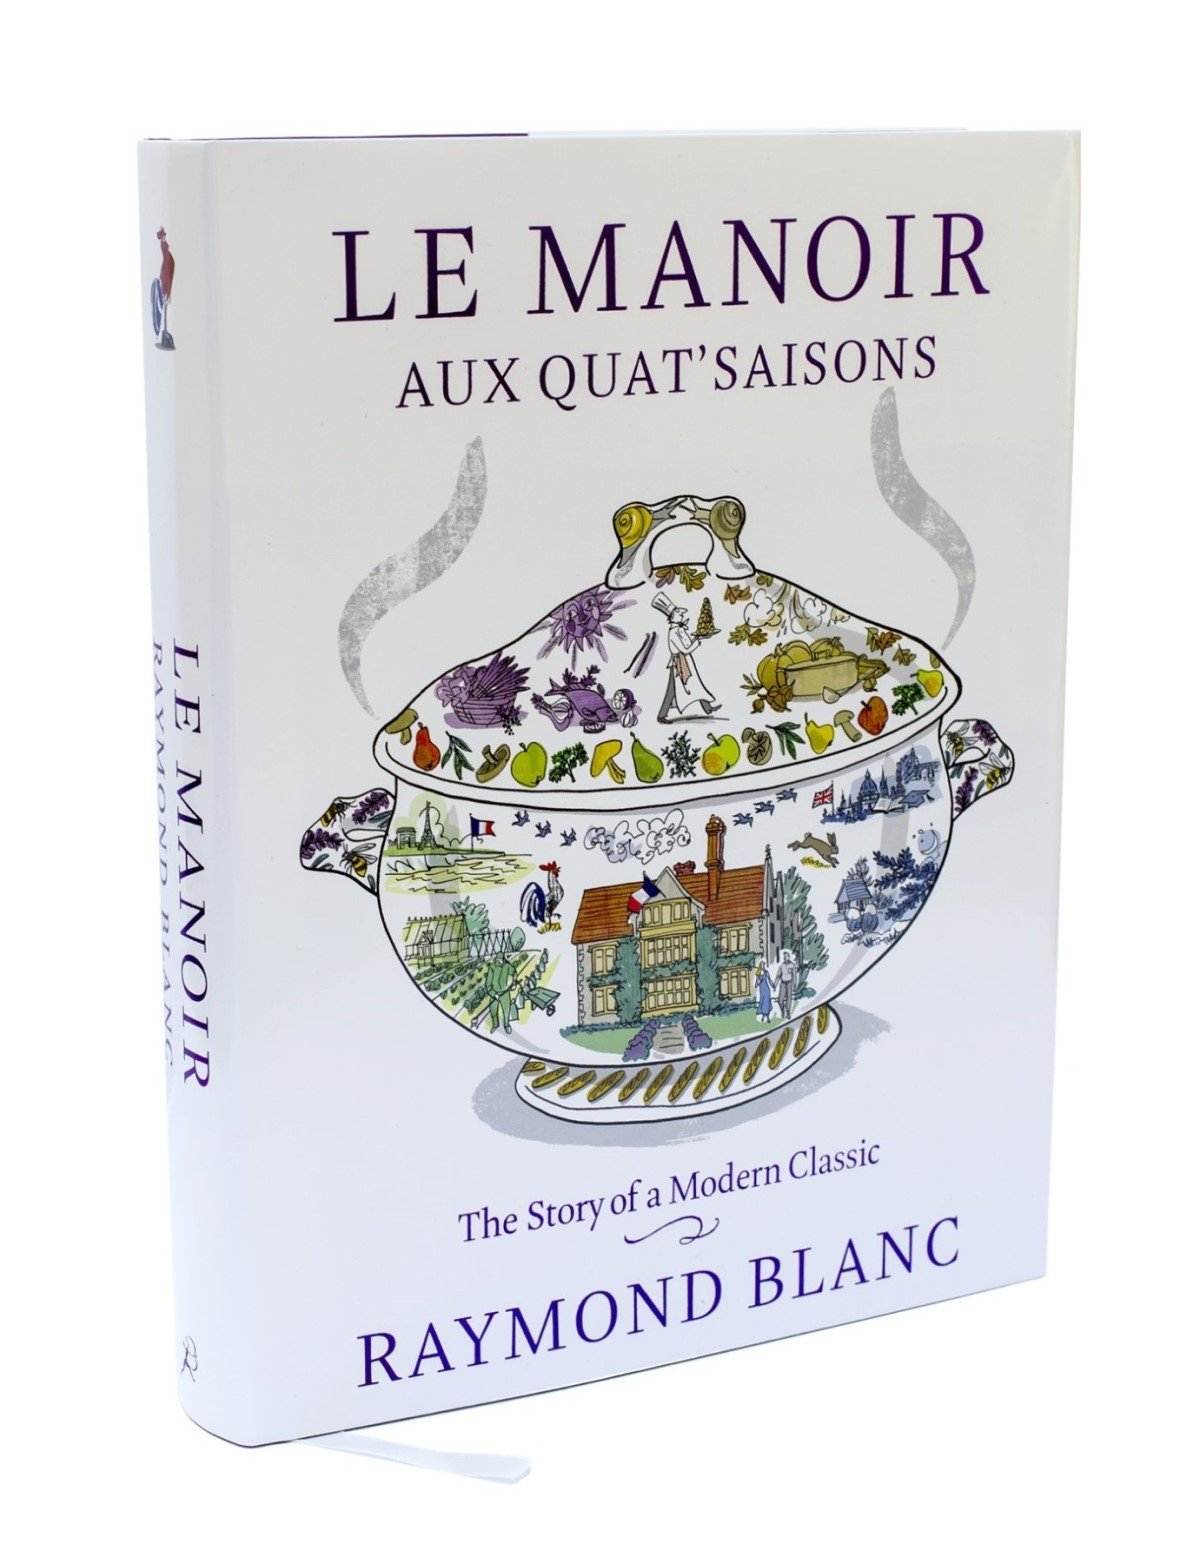 Le Manoir aux Quat'Saisons Cookbook